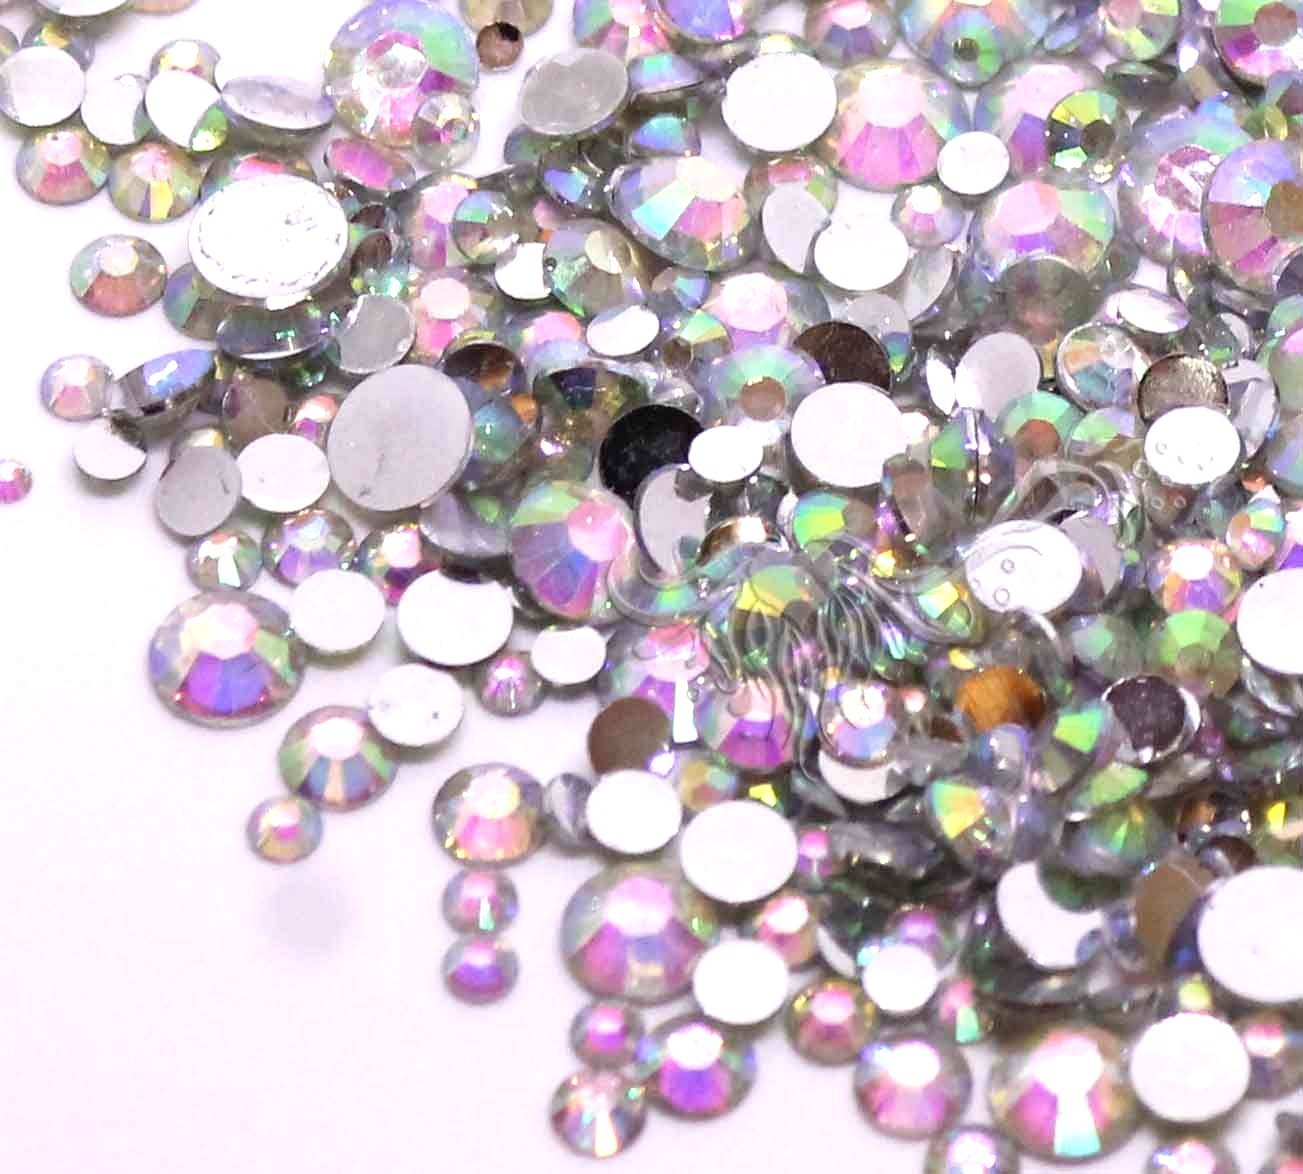 Stardust SHIMMERING OPAL SPECKS Jewels Mix